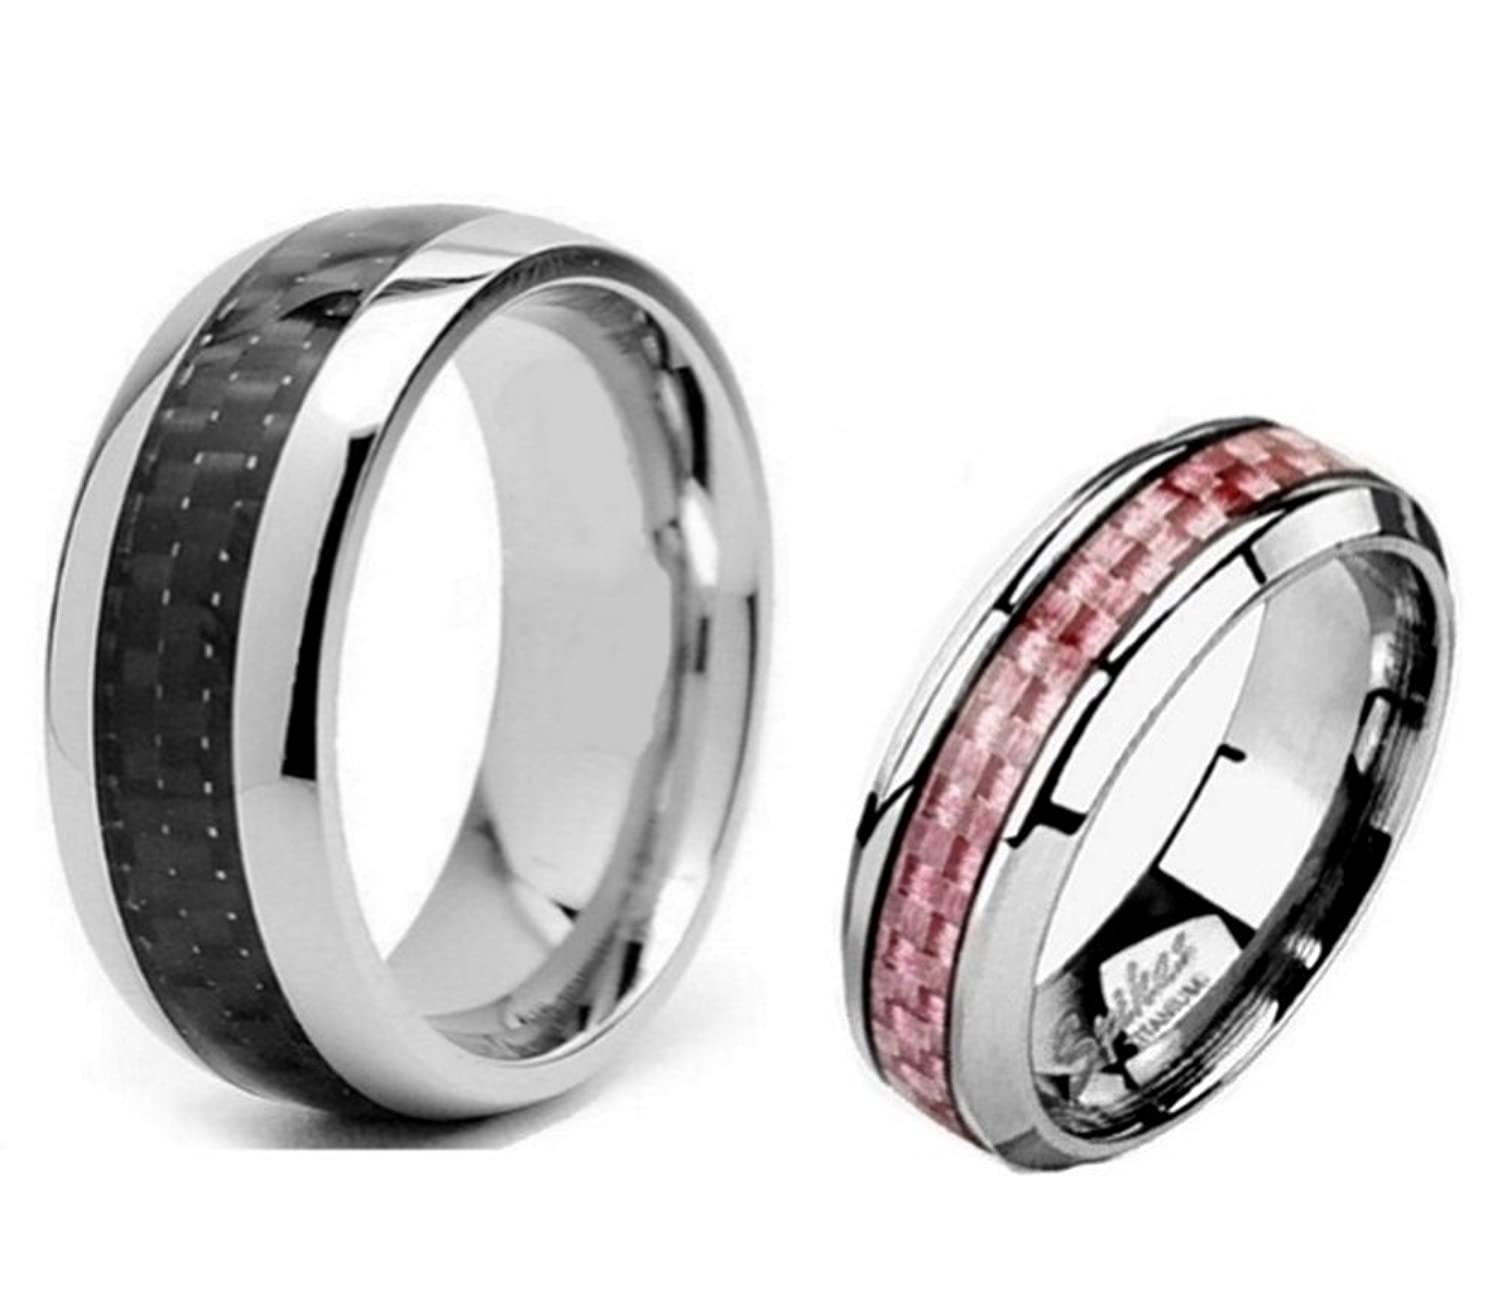 carbon fiber mnh gold for black edge com rose beveled amazon plated rings band wedding dp tungsten inlay men